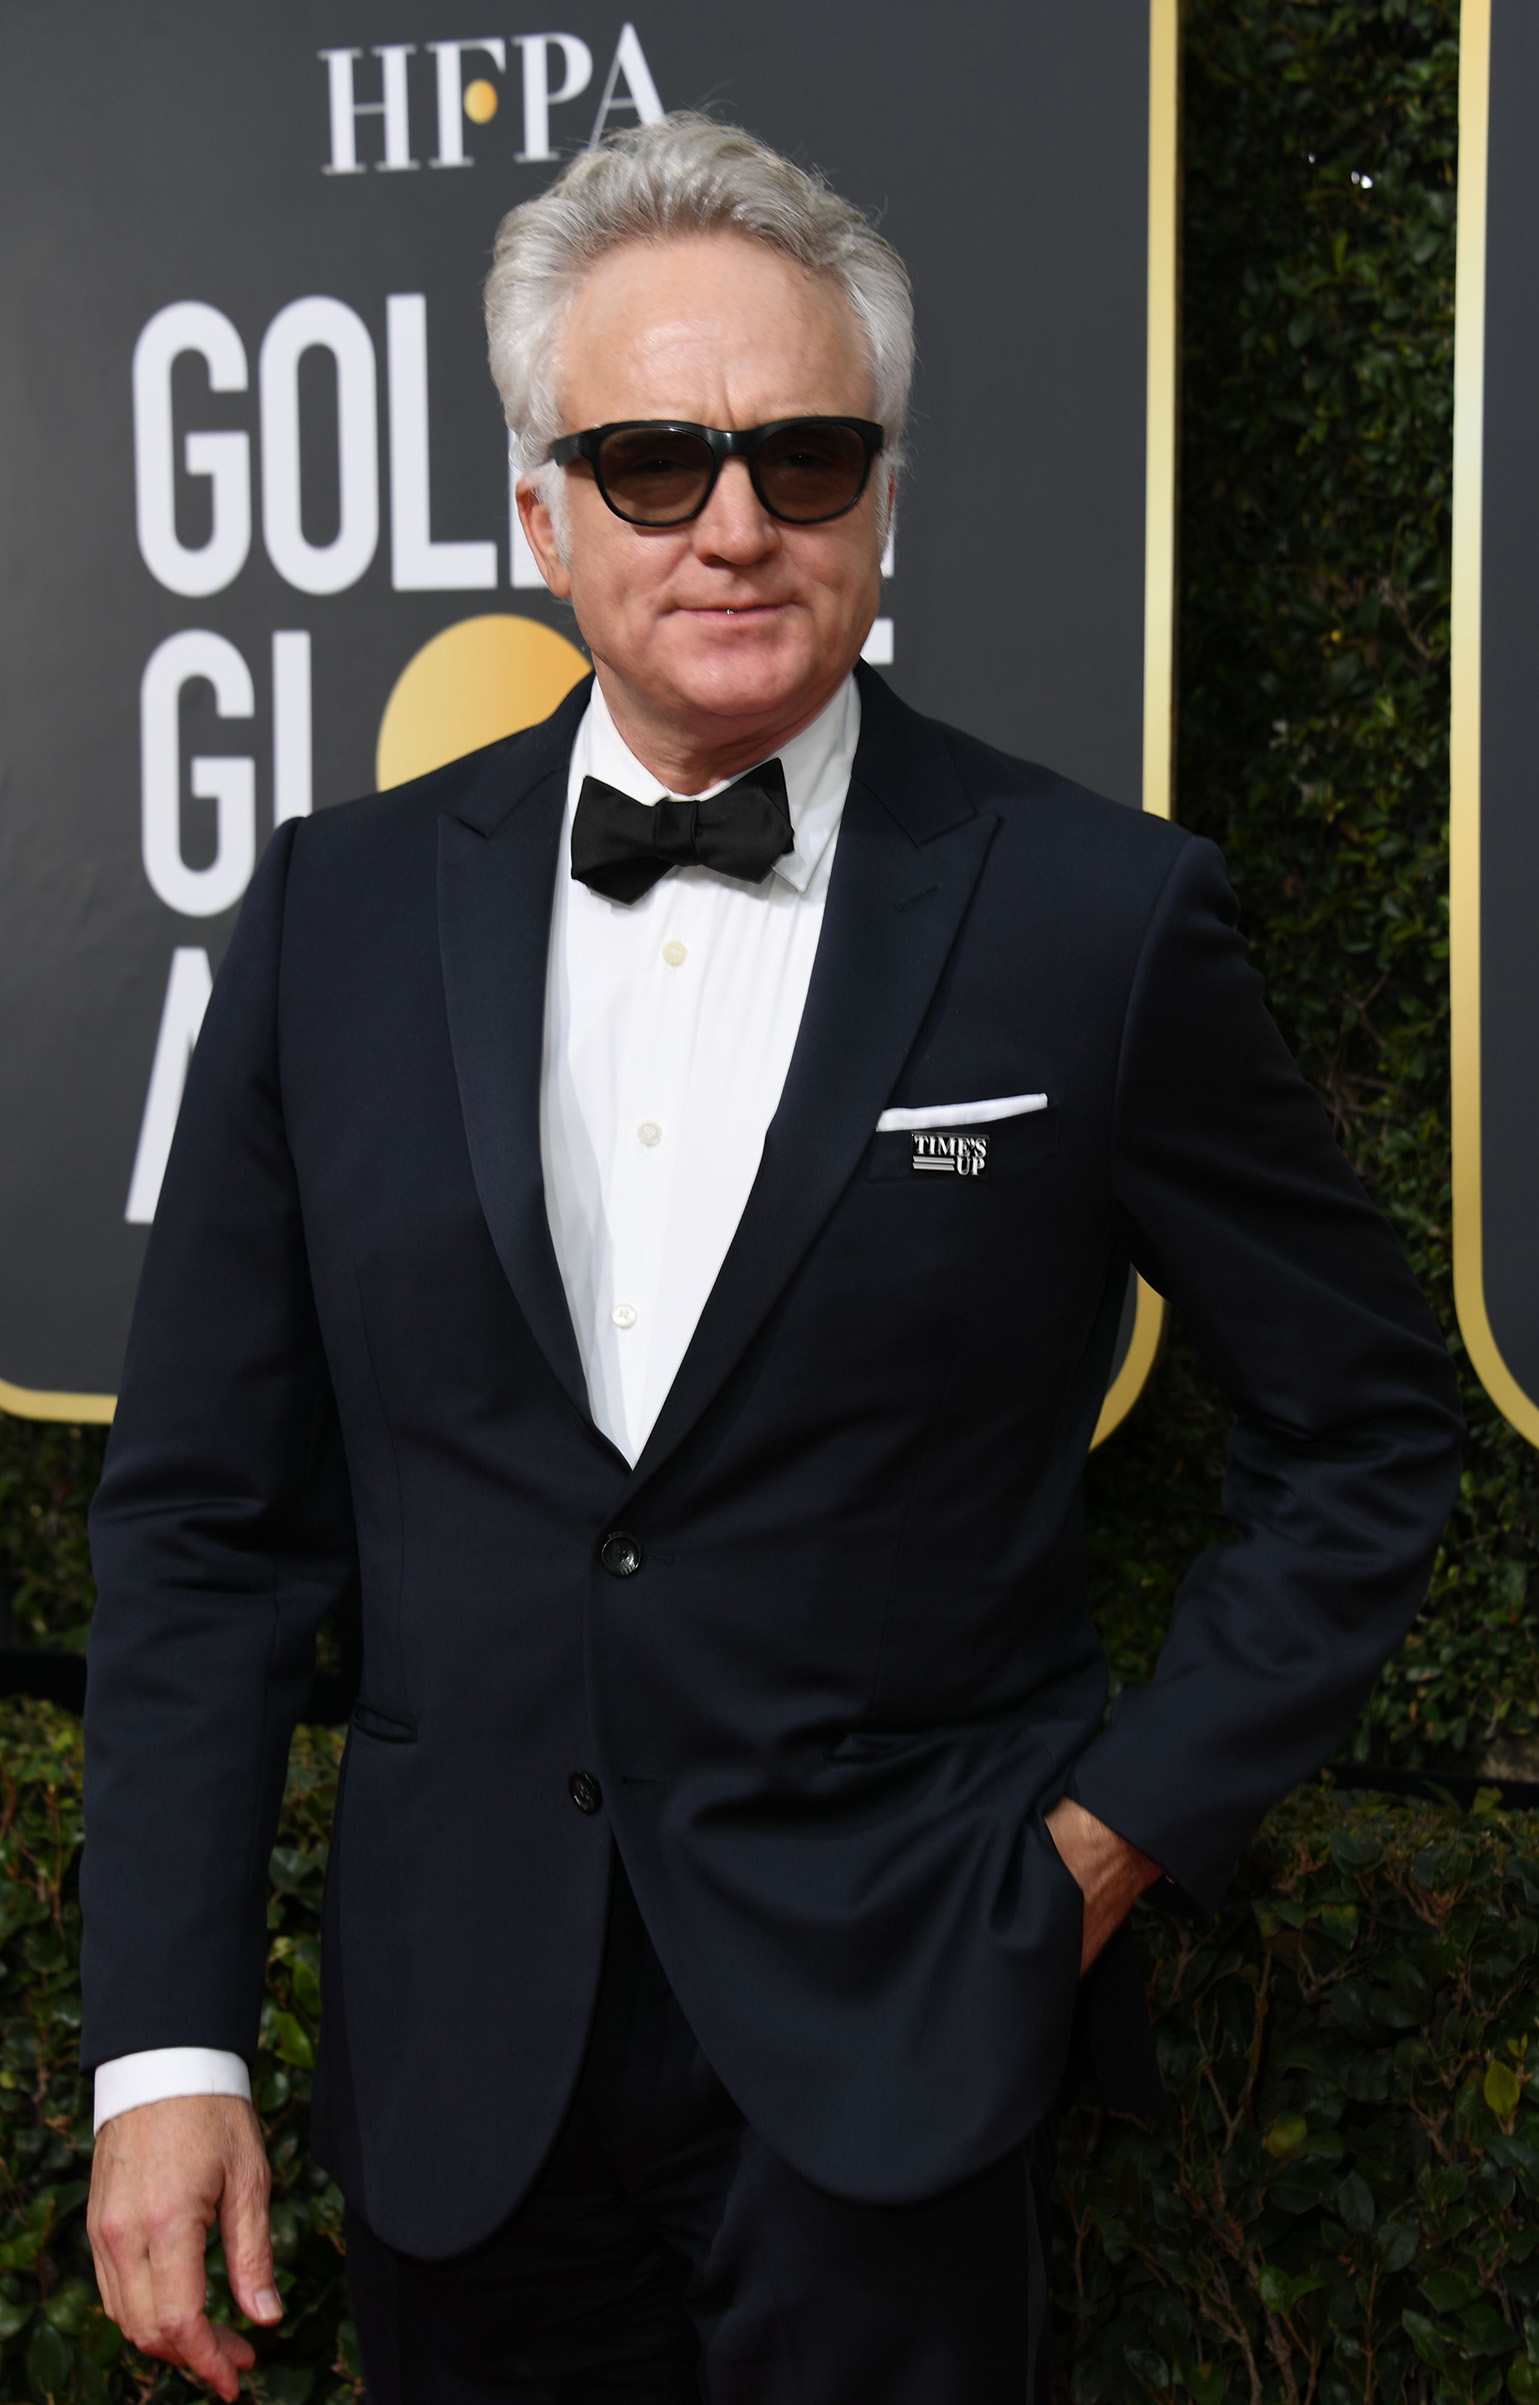 Actor Bradley Whitford arrives for the 75th Golden Globe Awards on January 7, 2018, in Beverly Hills, California.